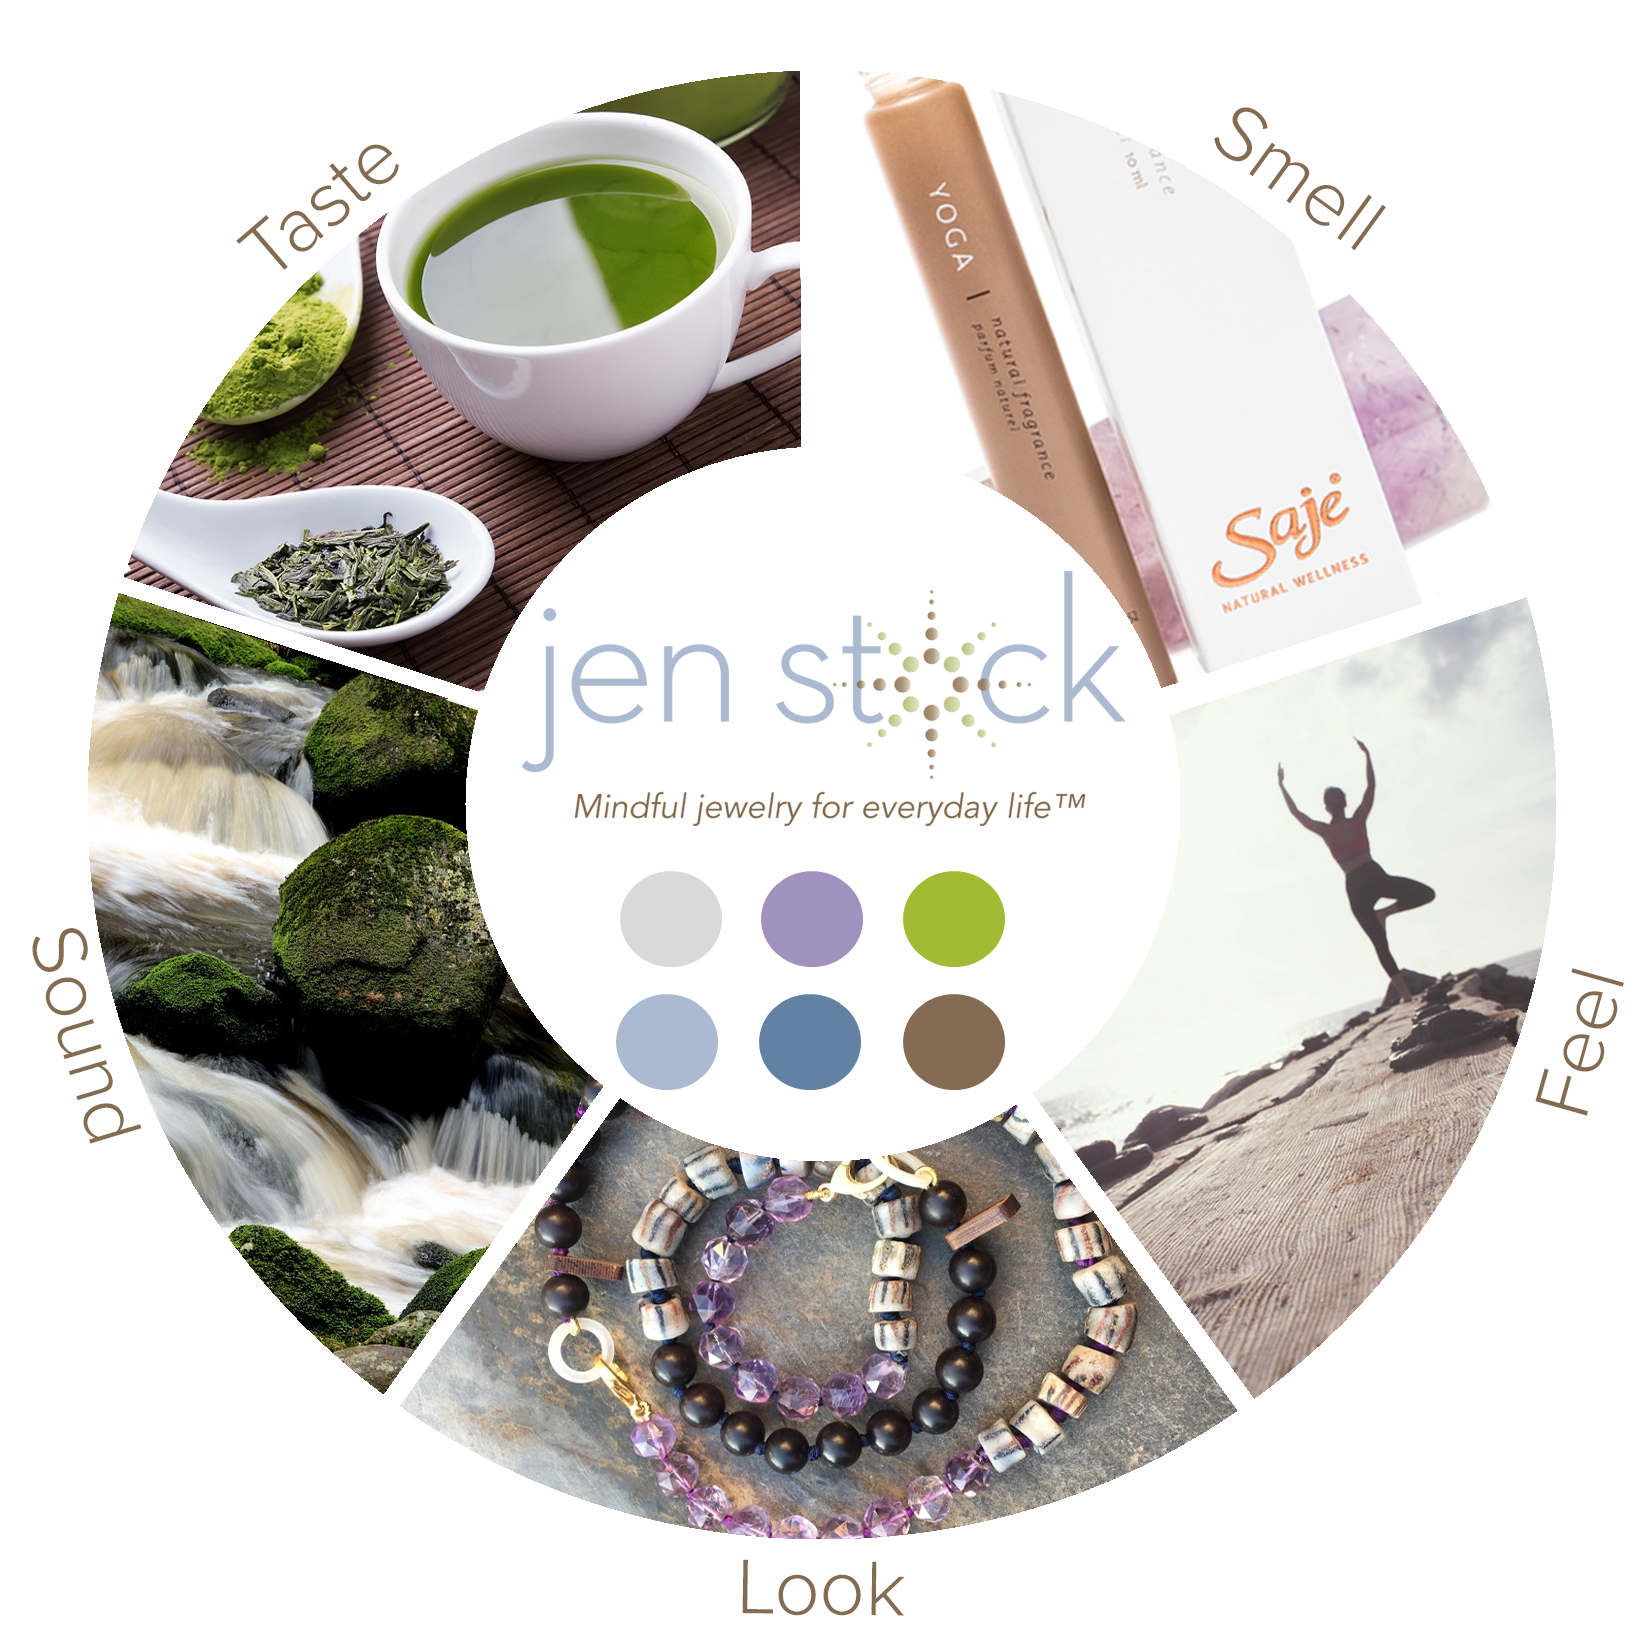 Jen Stock's Sensorial Mood Wheel was created by Laura Kyttanen. Cannot be reused without permission.